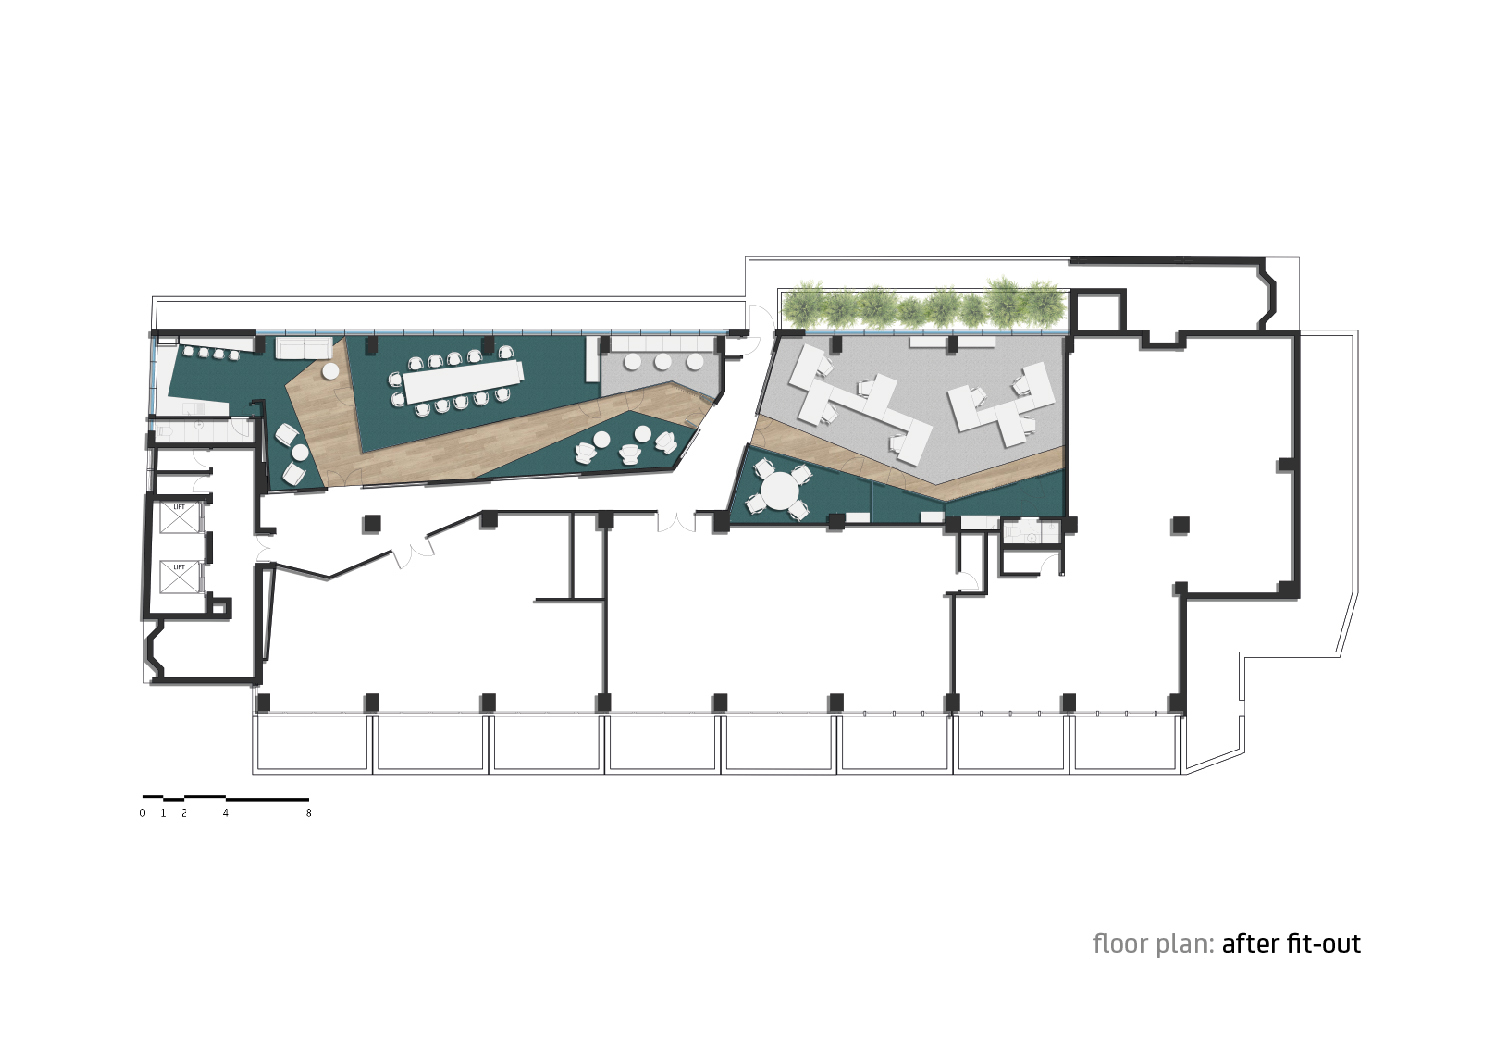 Floor plan after fit-out Forte Architetti}